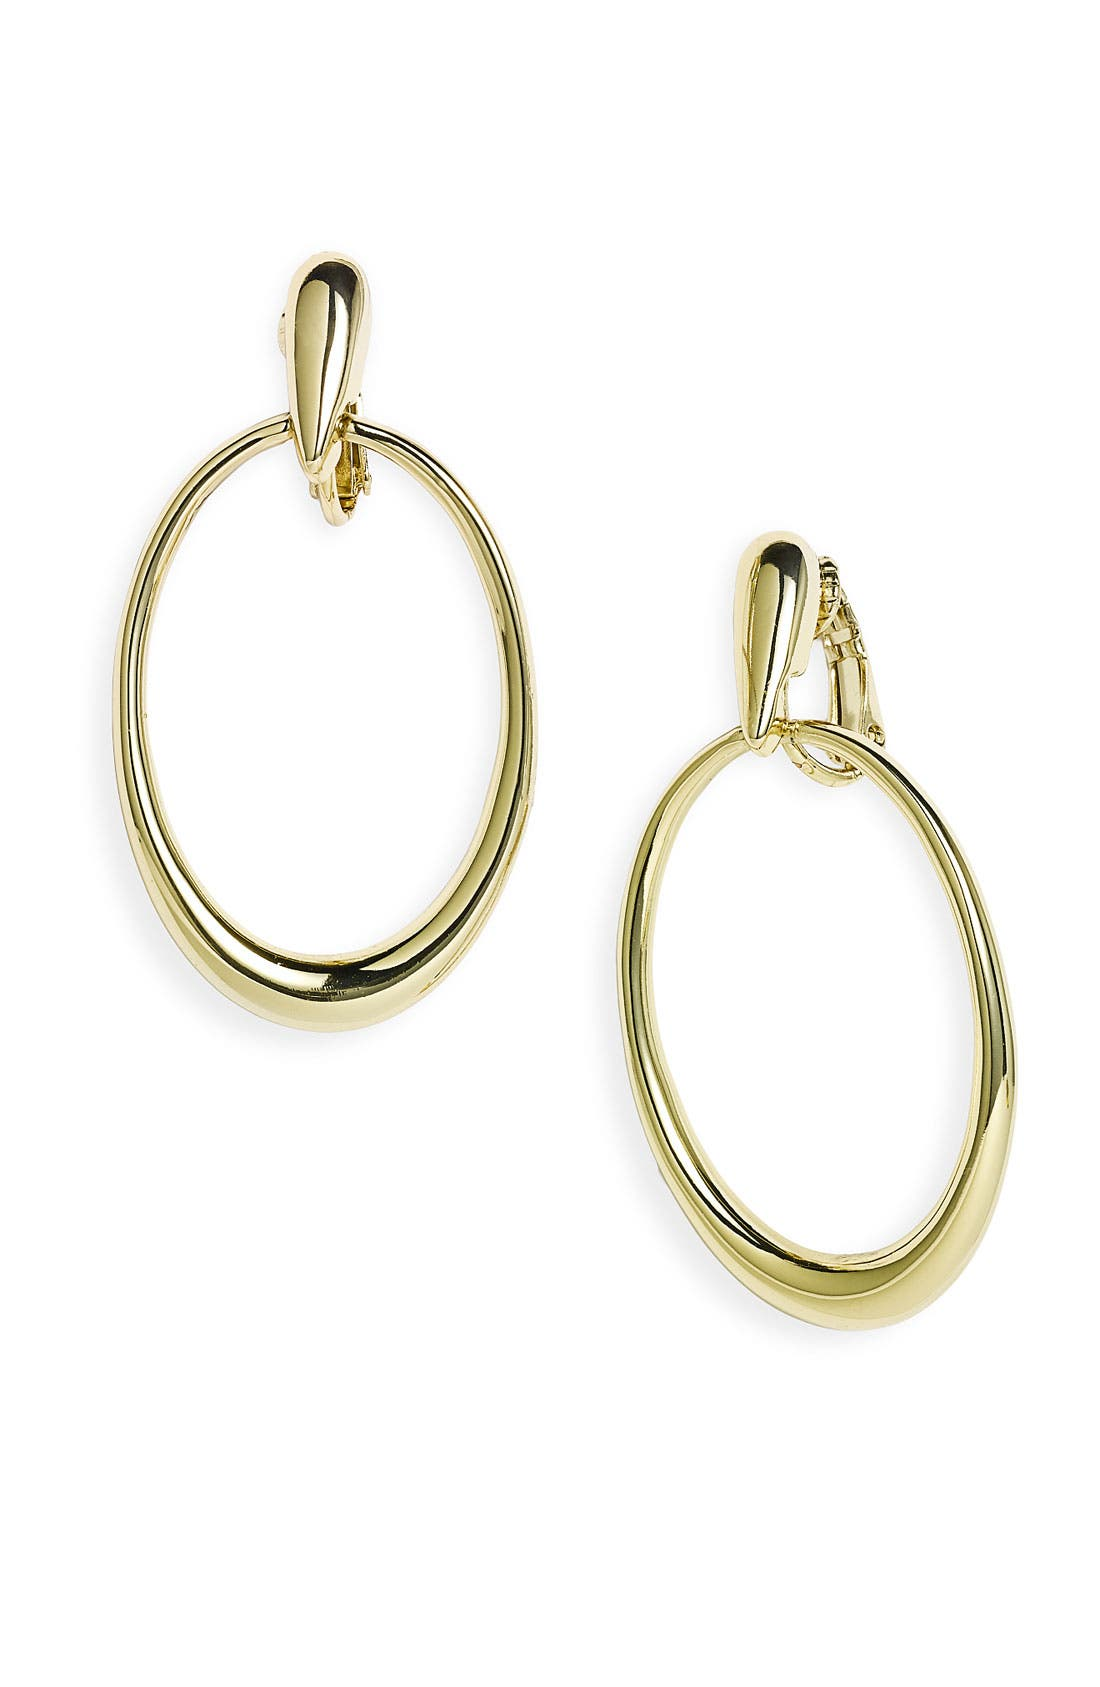 Main Image - Nordstrom Oval Hoop Clip Earrings